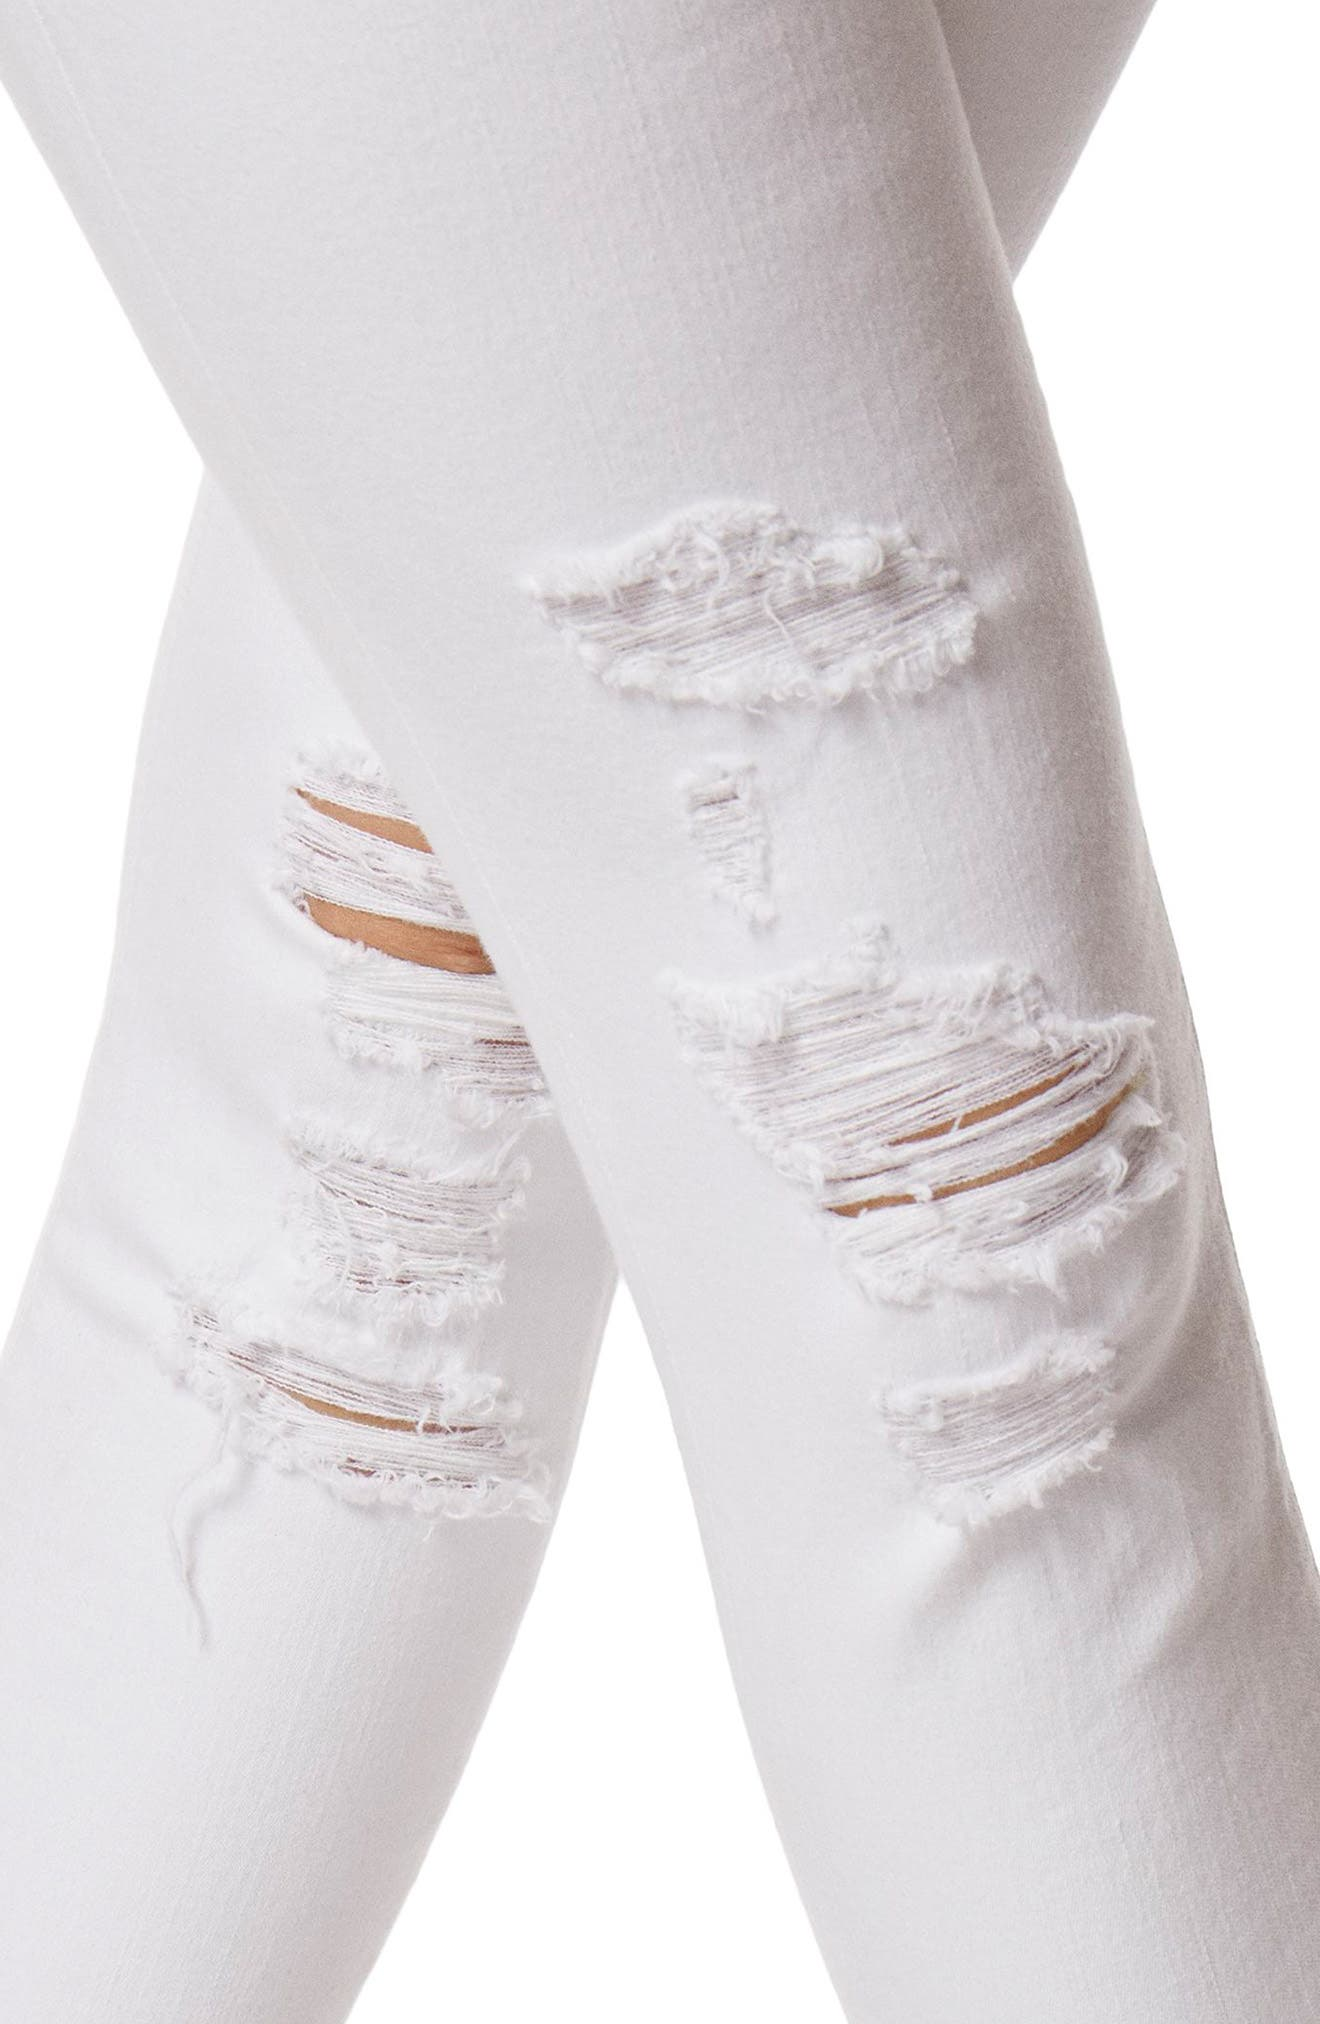 9326 Low Rise Crop Skinny Jeans,                             Alternate thumbnail 4, color,                             100